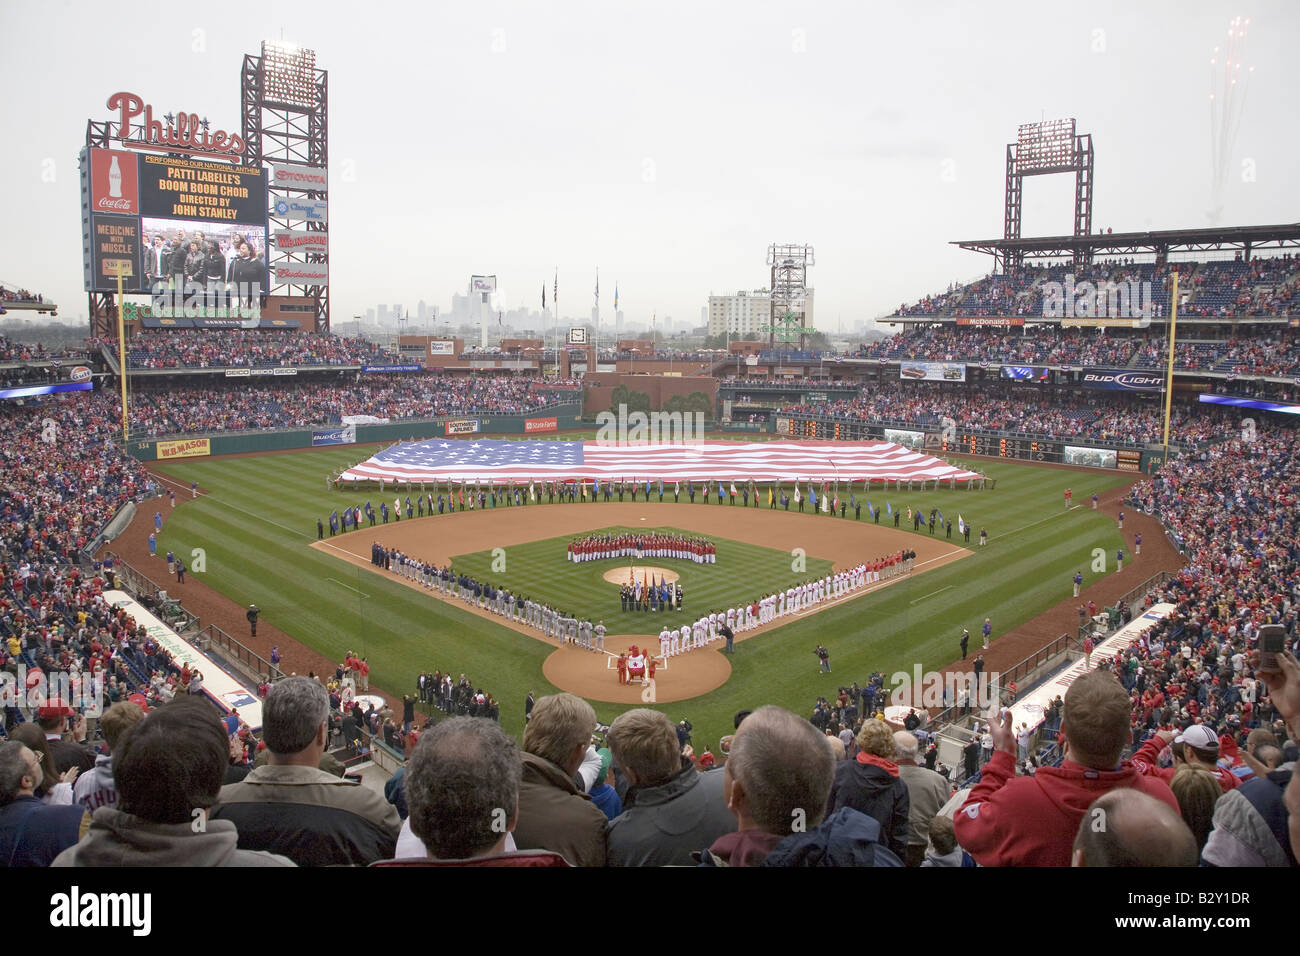 Opening Day Ceremonies featuring gigantic American Flag in Centerfield on March 31, 2008, Citizen Bank Park - Stock Image